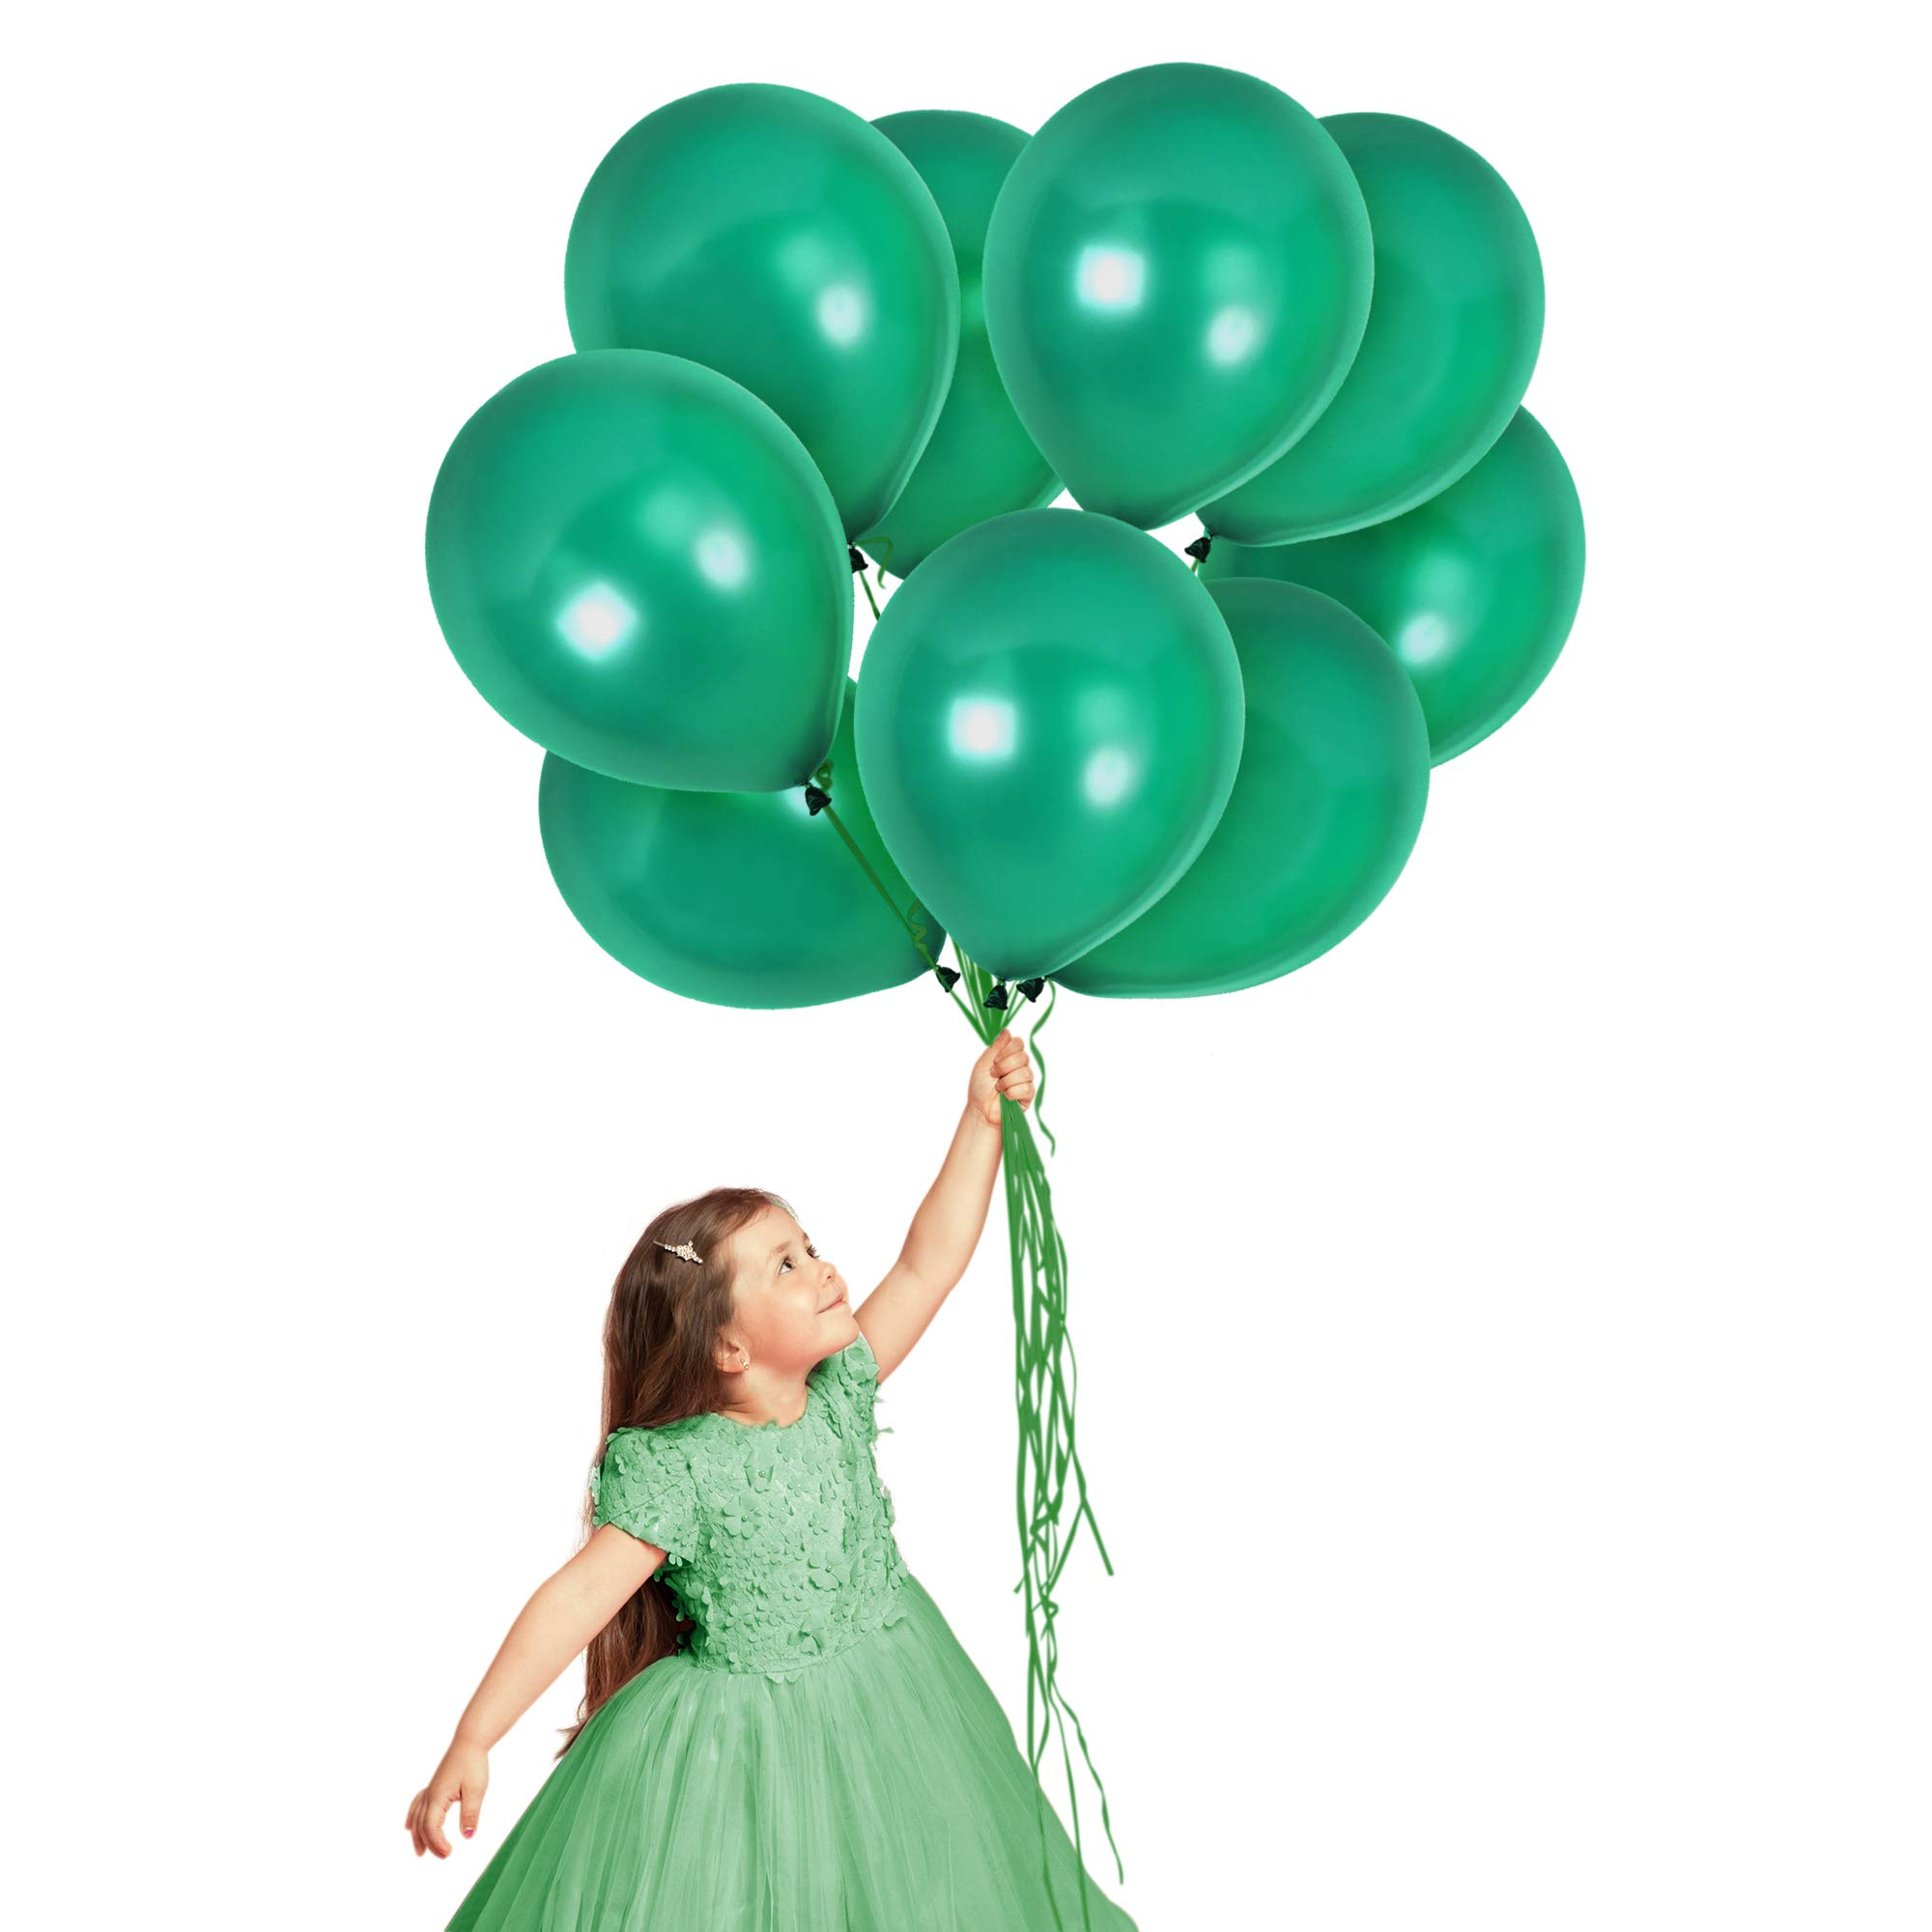 Mardi Gras Decorations 72 Pack Emerald Green Balloons 12 Inch Metallic Latex for Tropical Hawaiian Luau Jungle Party Mermaid Baby Shower Greenery Wedding Arch St. Patrick's Party Supplies